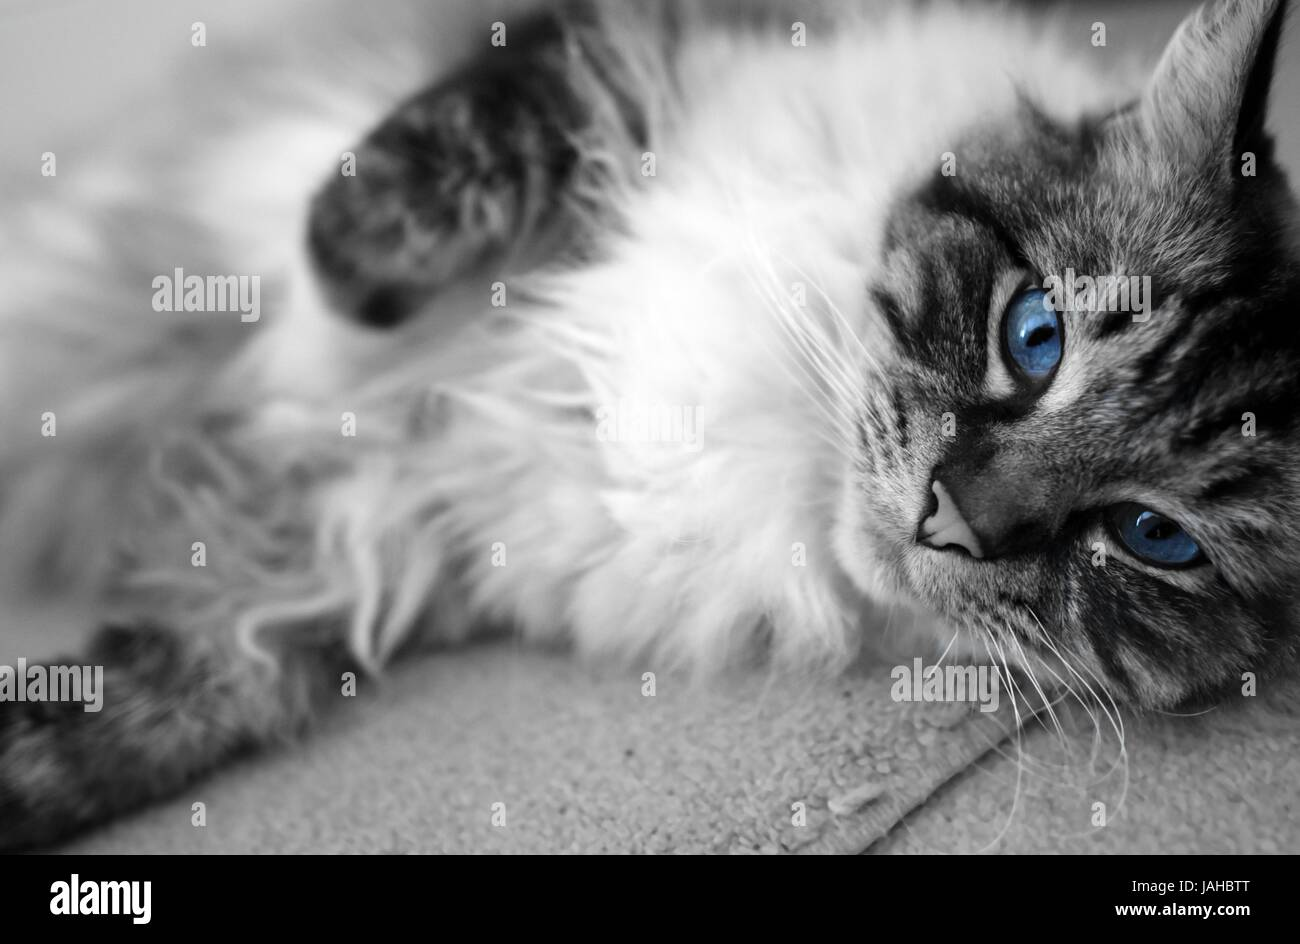 Black And White Shot With Blue Eyes Ragdoll Cat Portrait Stock